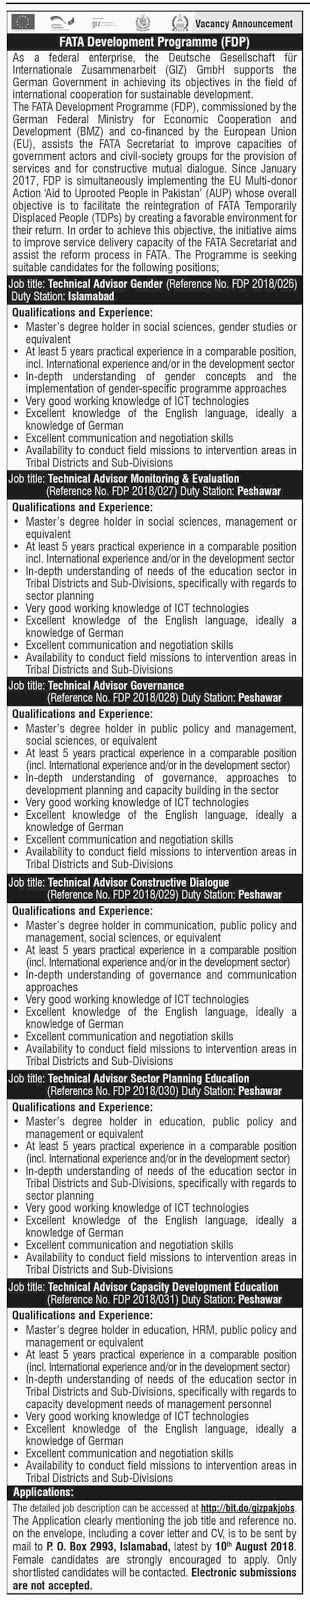 FATA Development Program for August 2018